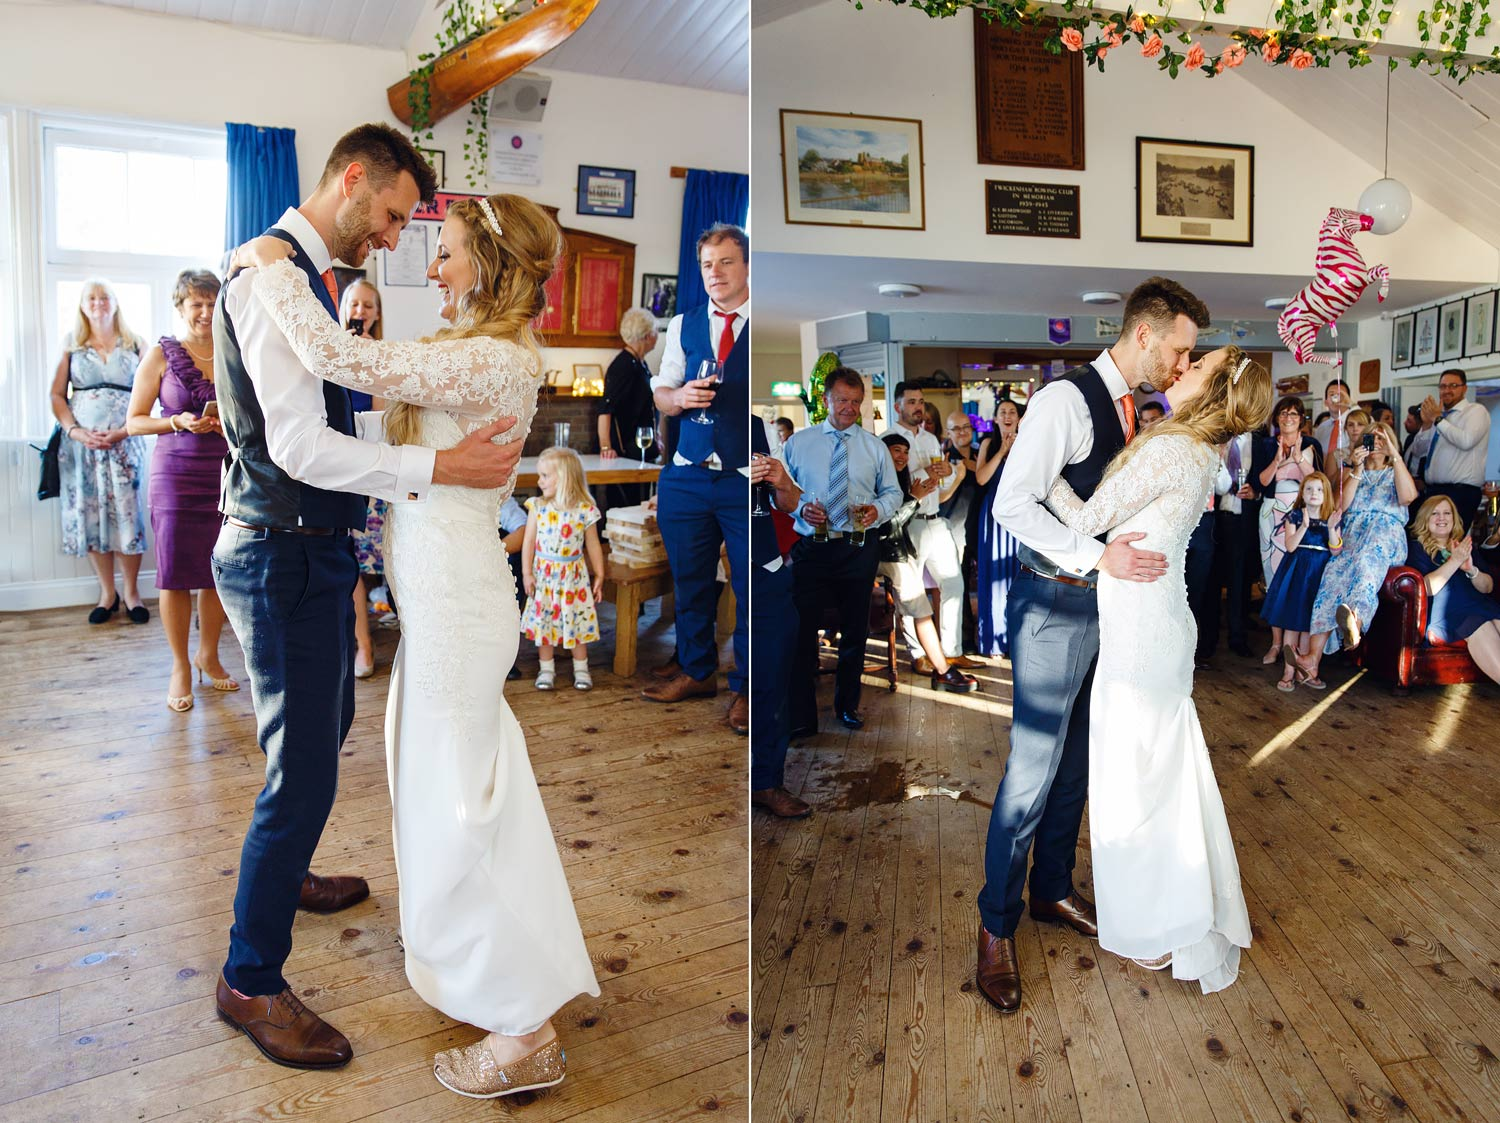 A couple dance their first dance at Twickenham Rowing Club, London.